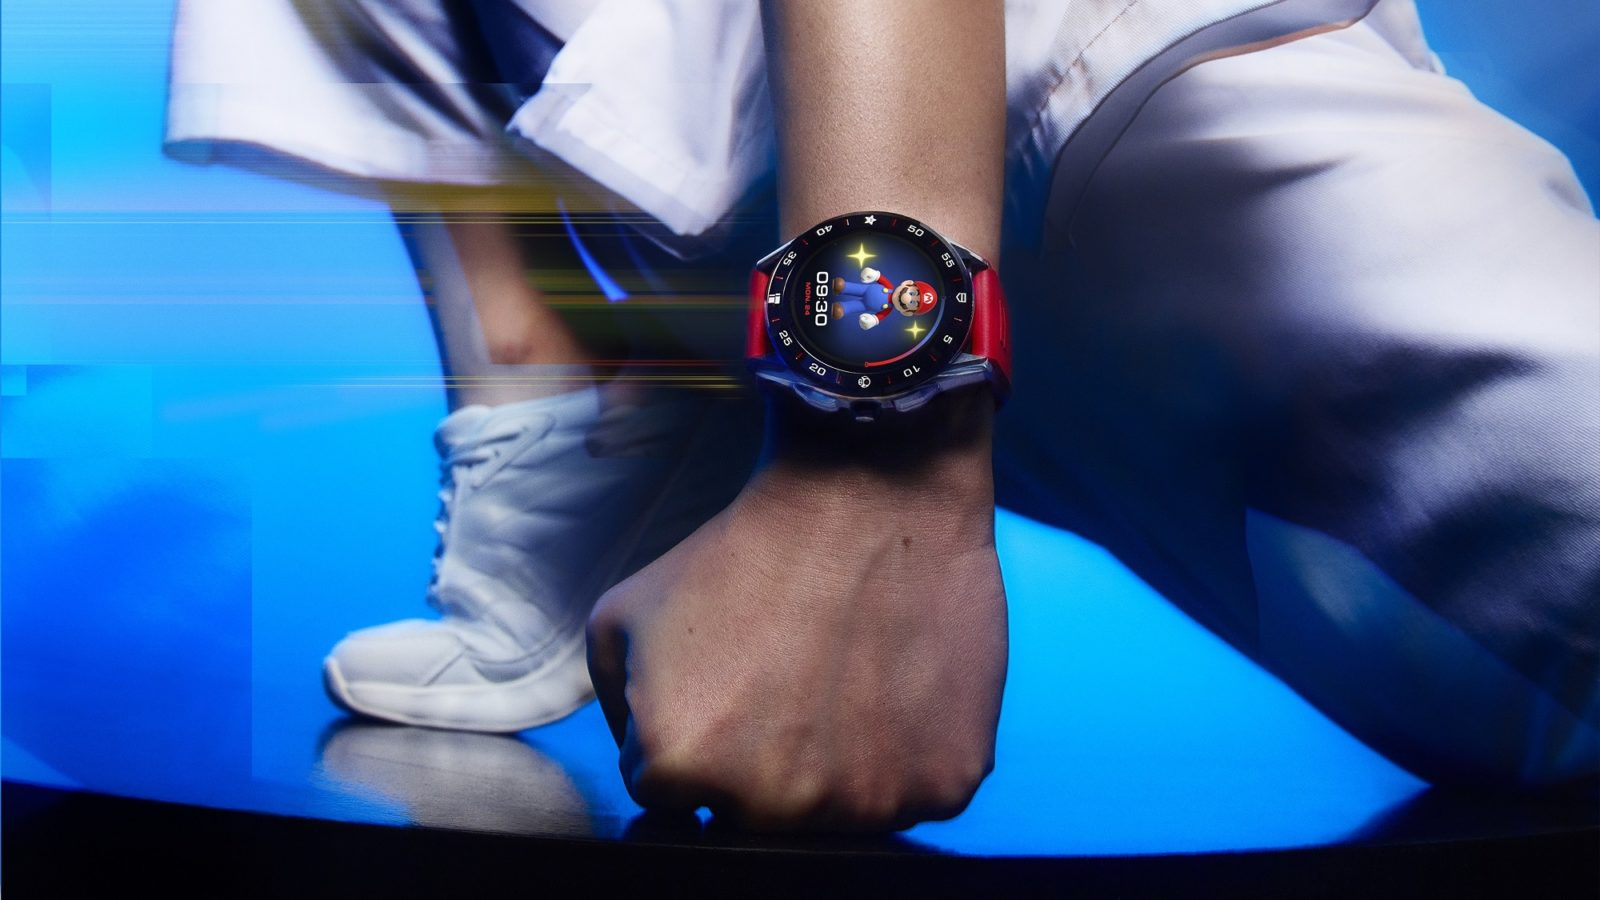 The TAG Heuer Super Mario collaboration is the crossover we have been waiting for